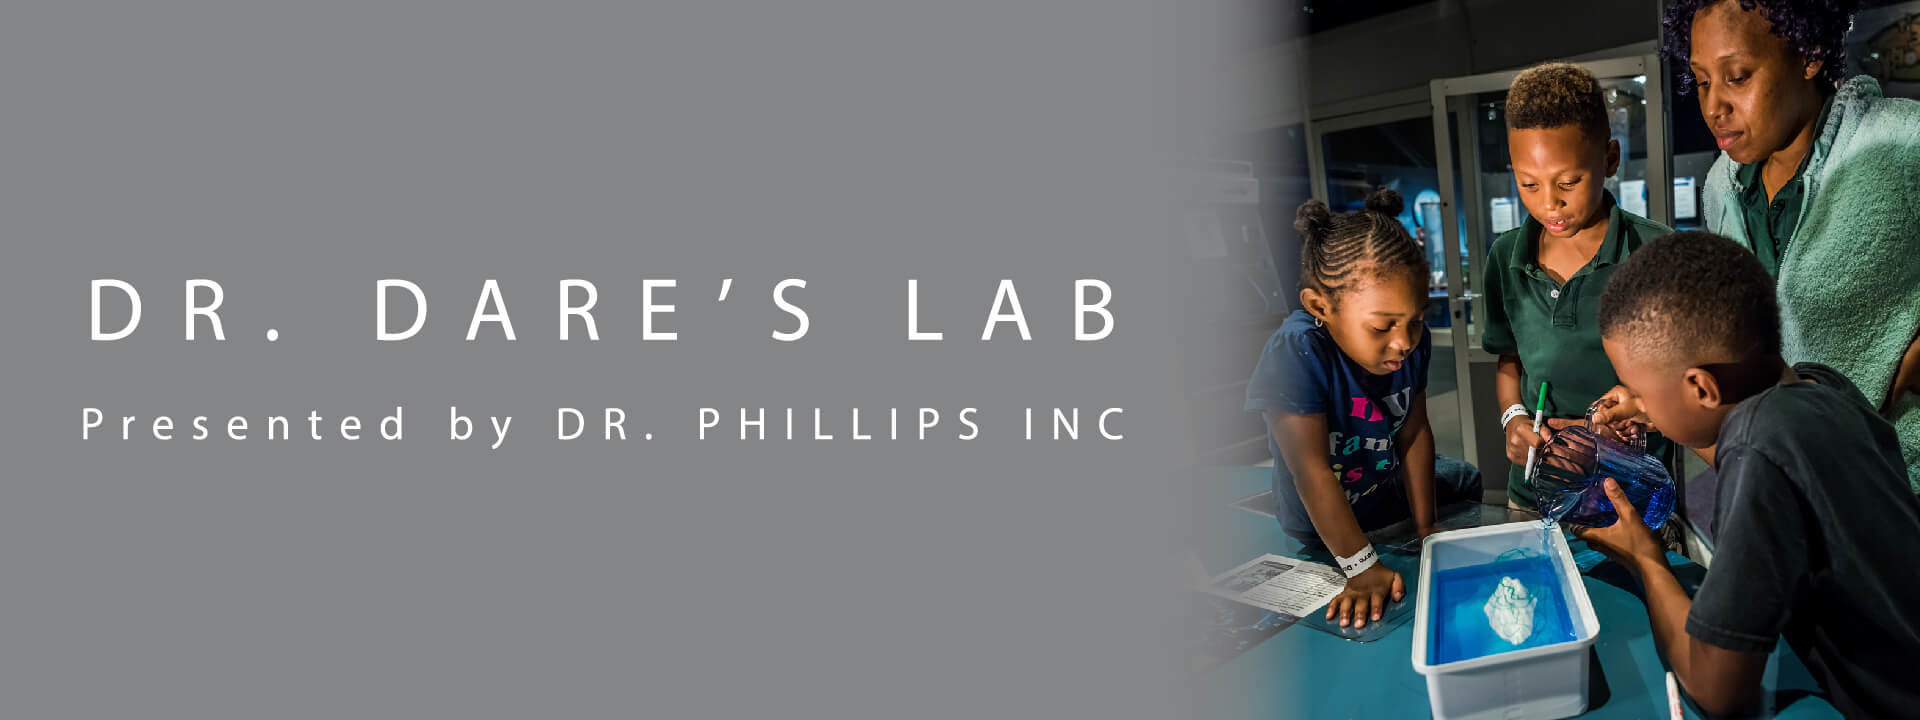 Dr. Dare's Lab logo with photo of family of four performing an experiment together in the lab.